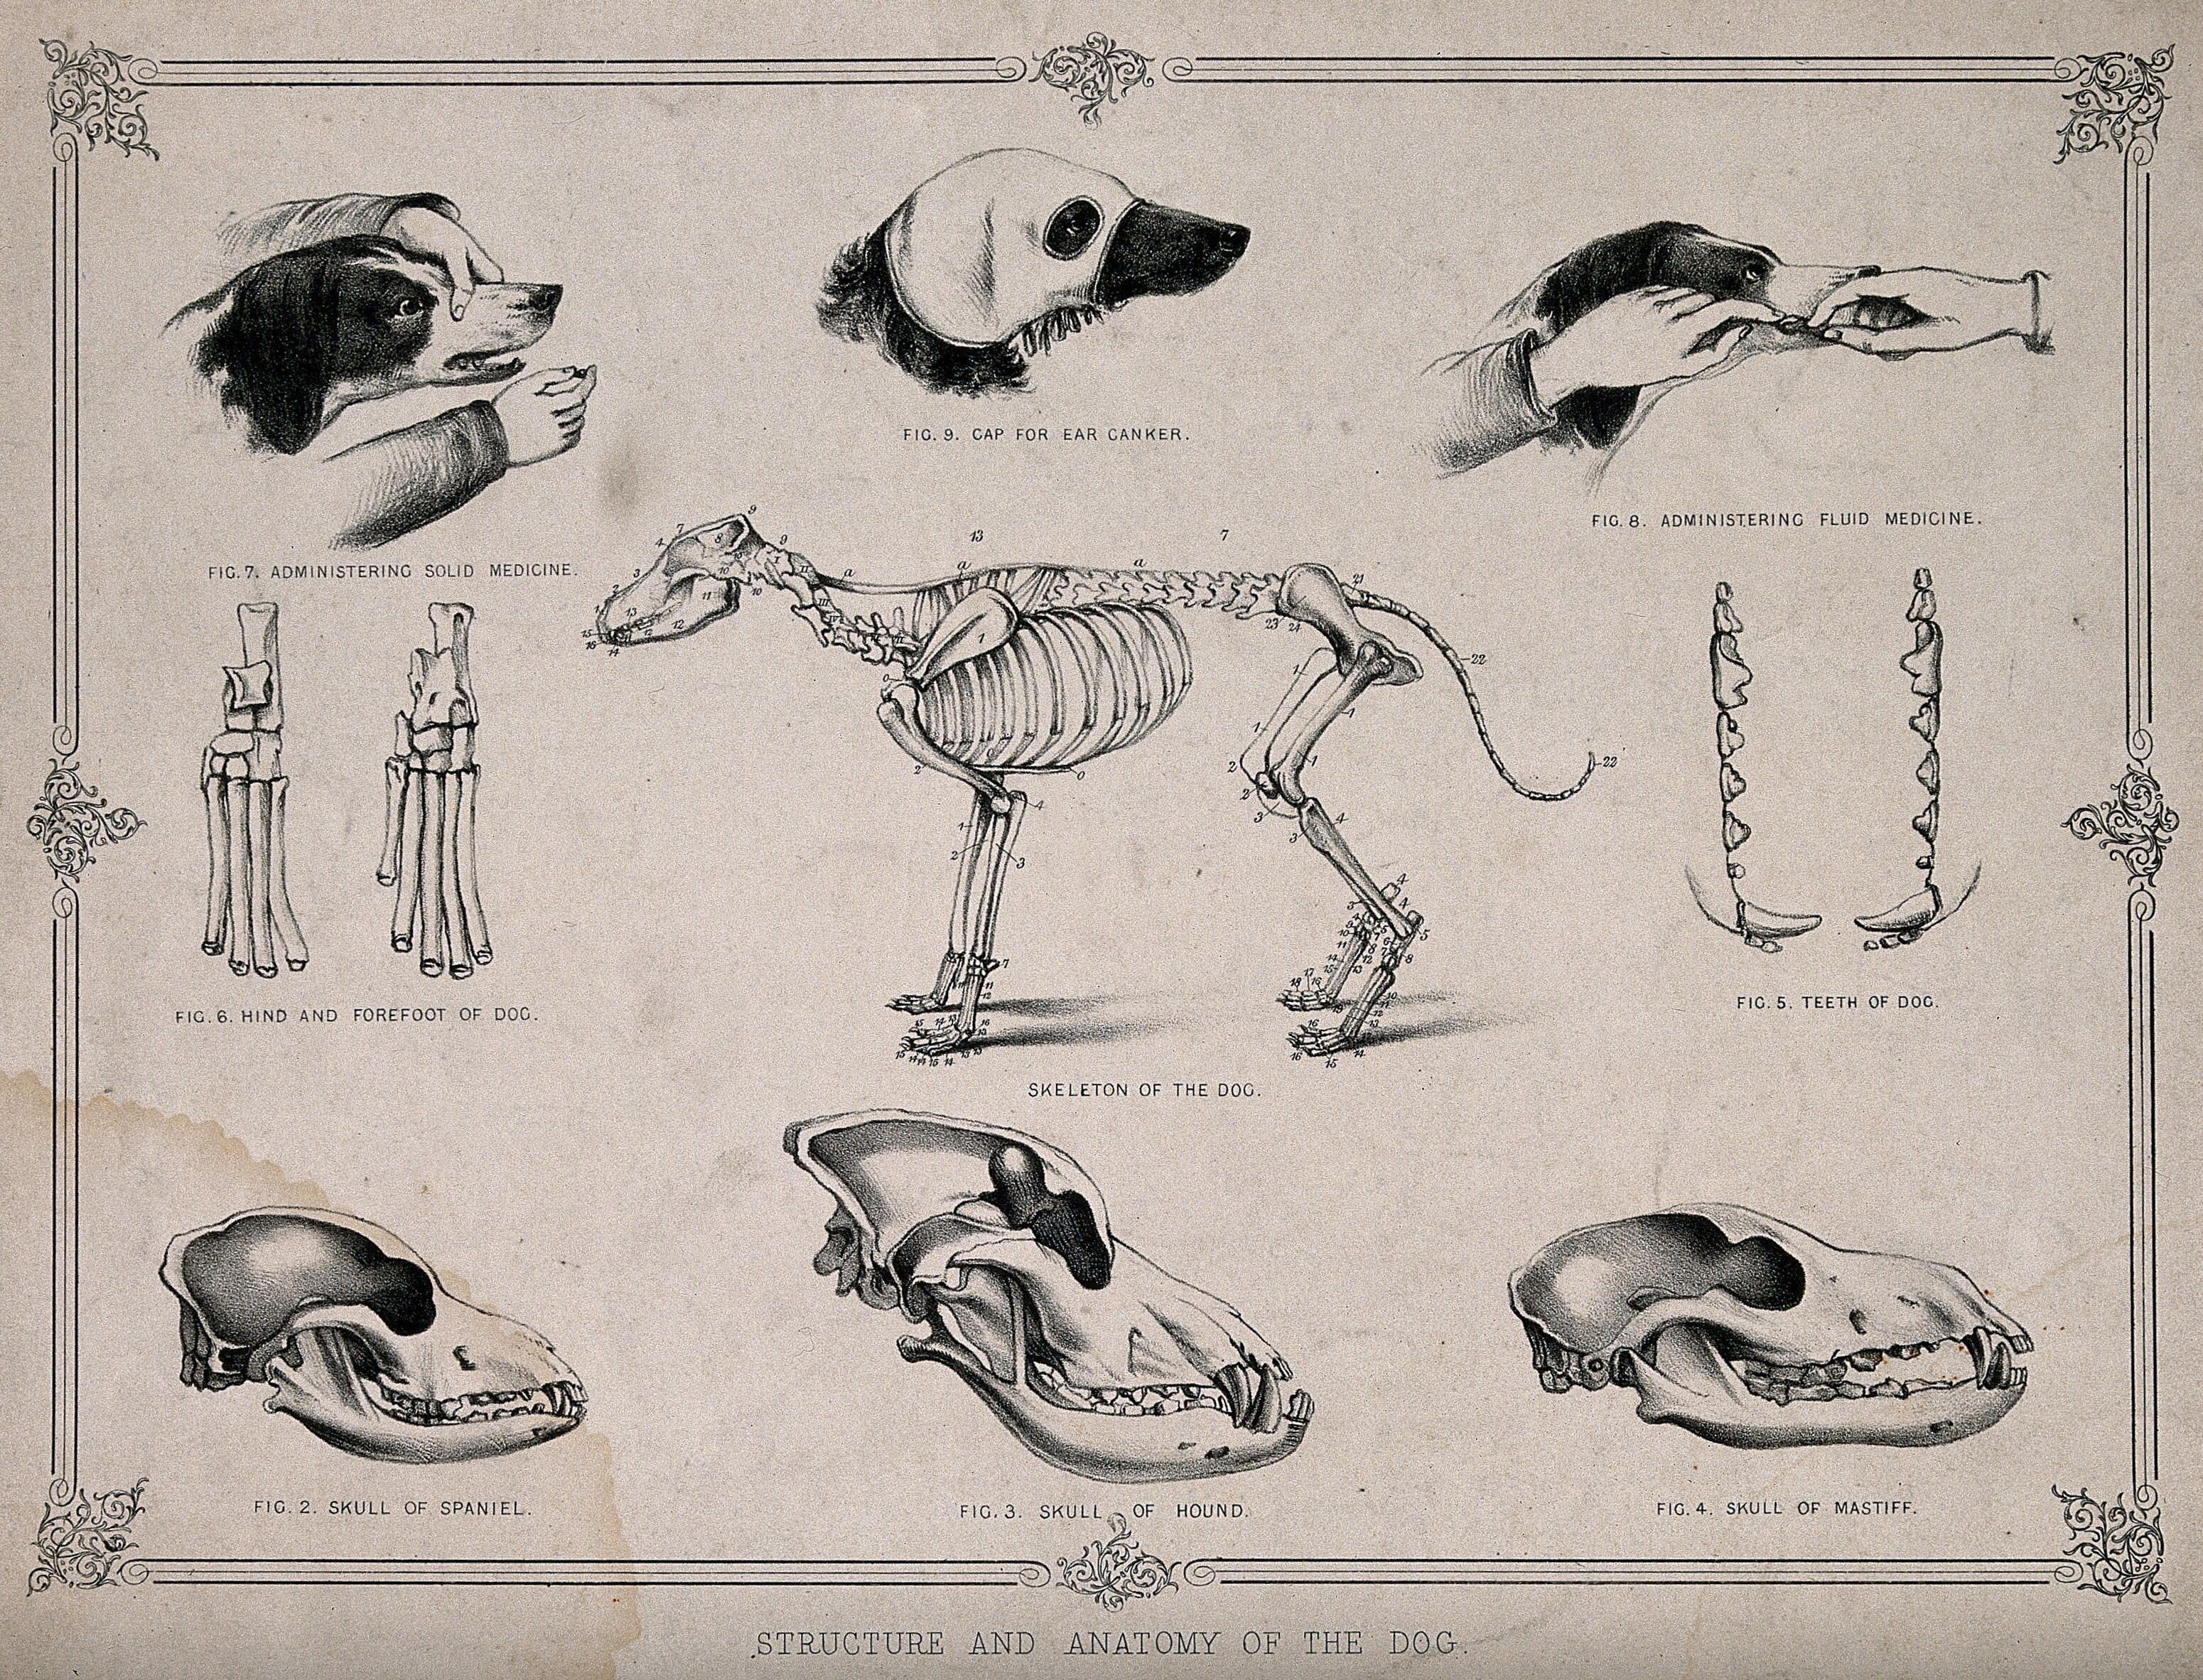 Anatomy Of A Dog Nine Figures Showing The Skeletons And Skulls Of